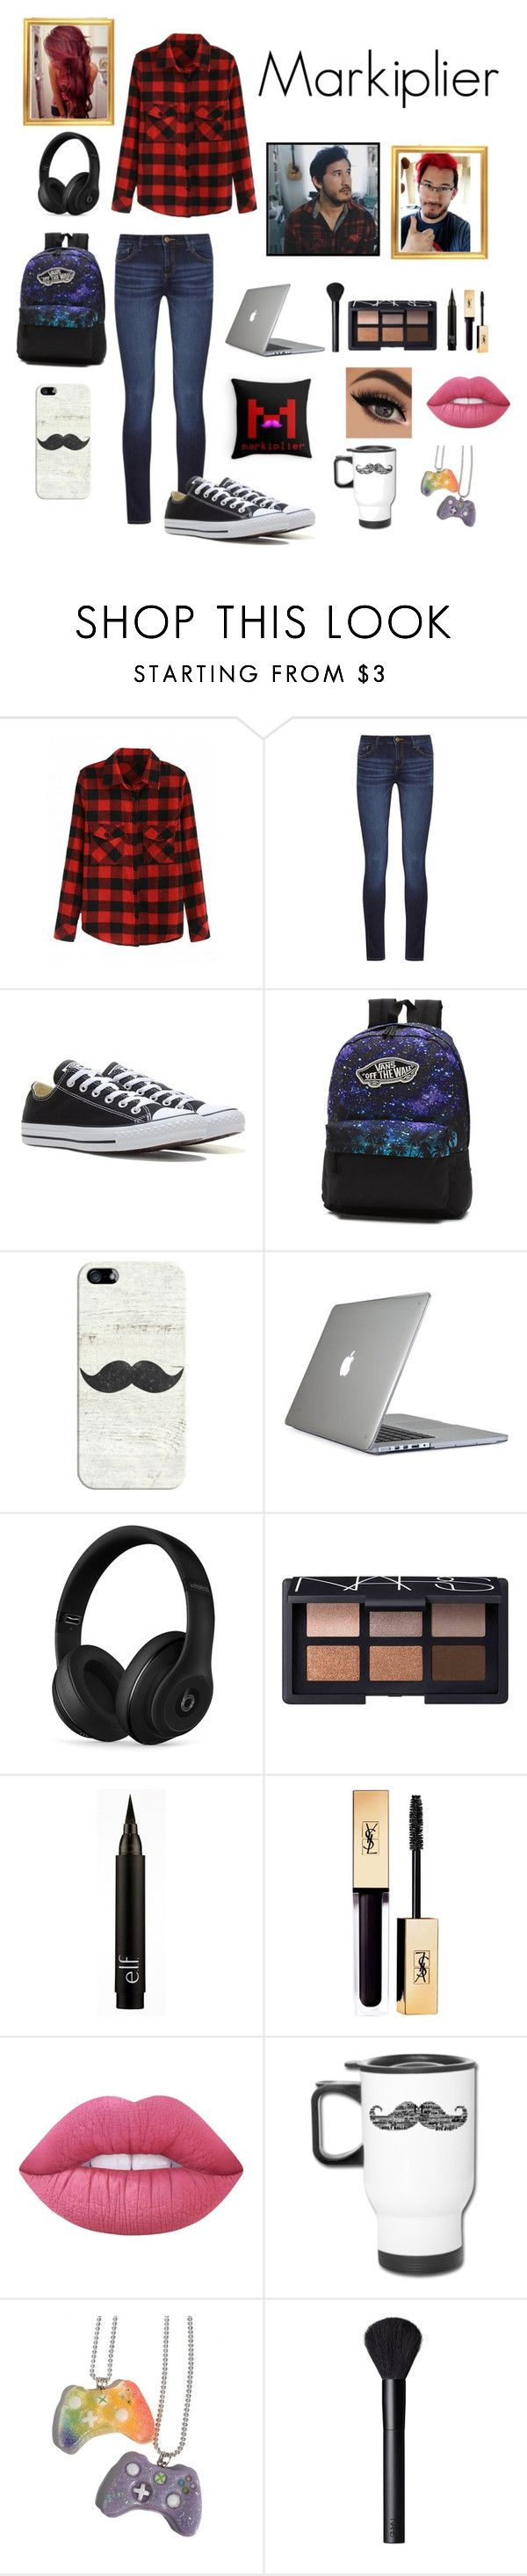 """Markiplier inspired outfit"" by geekyoutfits101 ❤ liked on Polyvore featuring DL1961 Premium Denim, Converse, Vans, Casetify, Speck, Beats by Dr. Dre, NARS Cosmetics, Lime Crime, Penumbra and youtube"